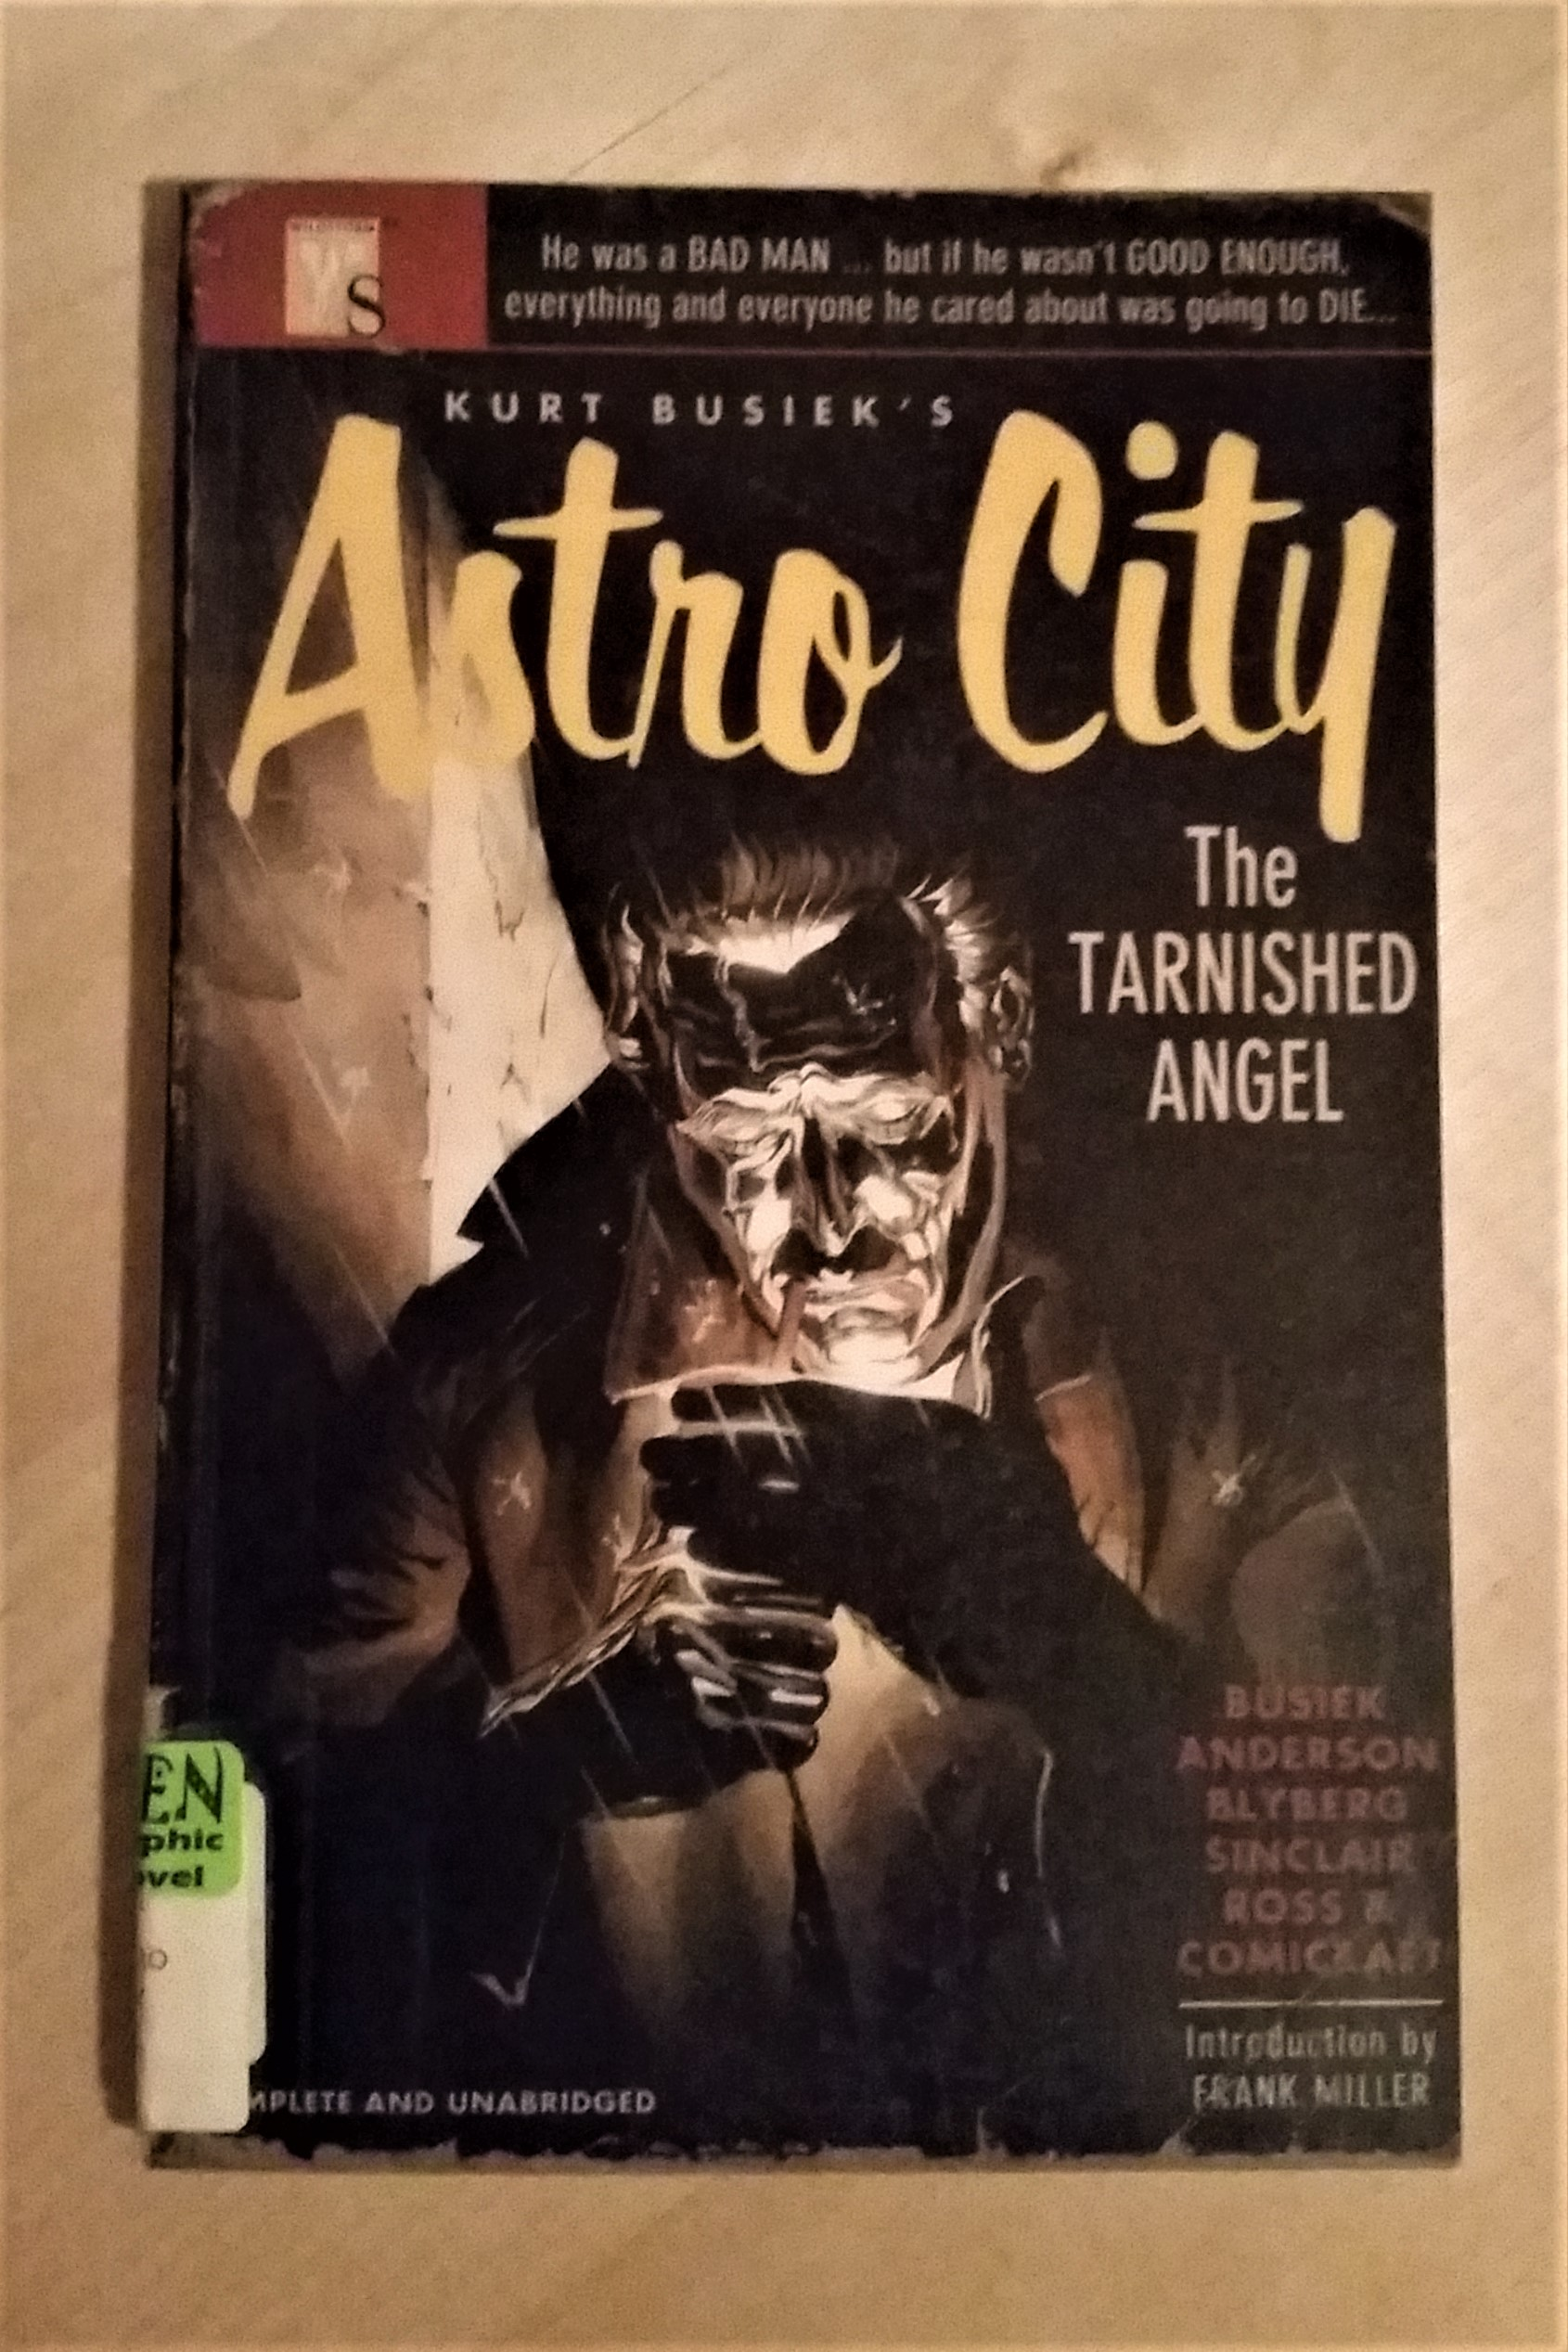 Astro City The Tarnished Angel Cover Photo.jpg